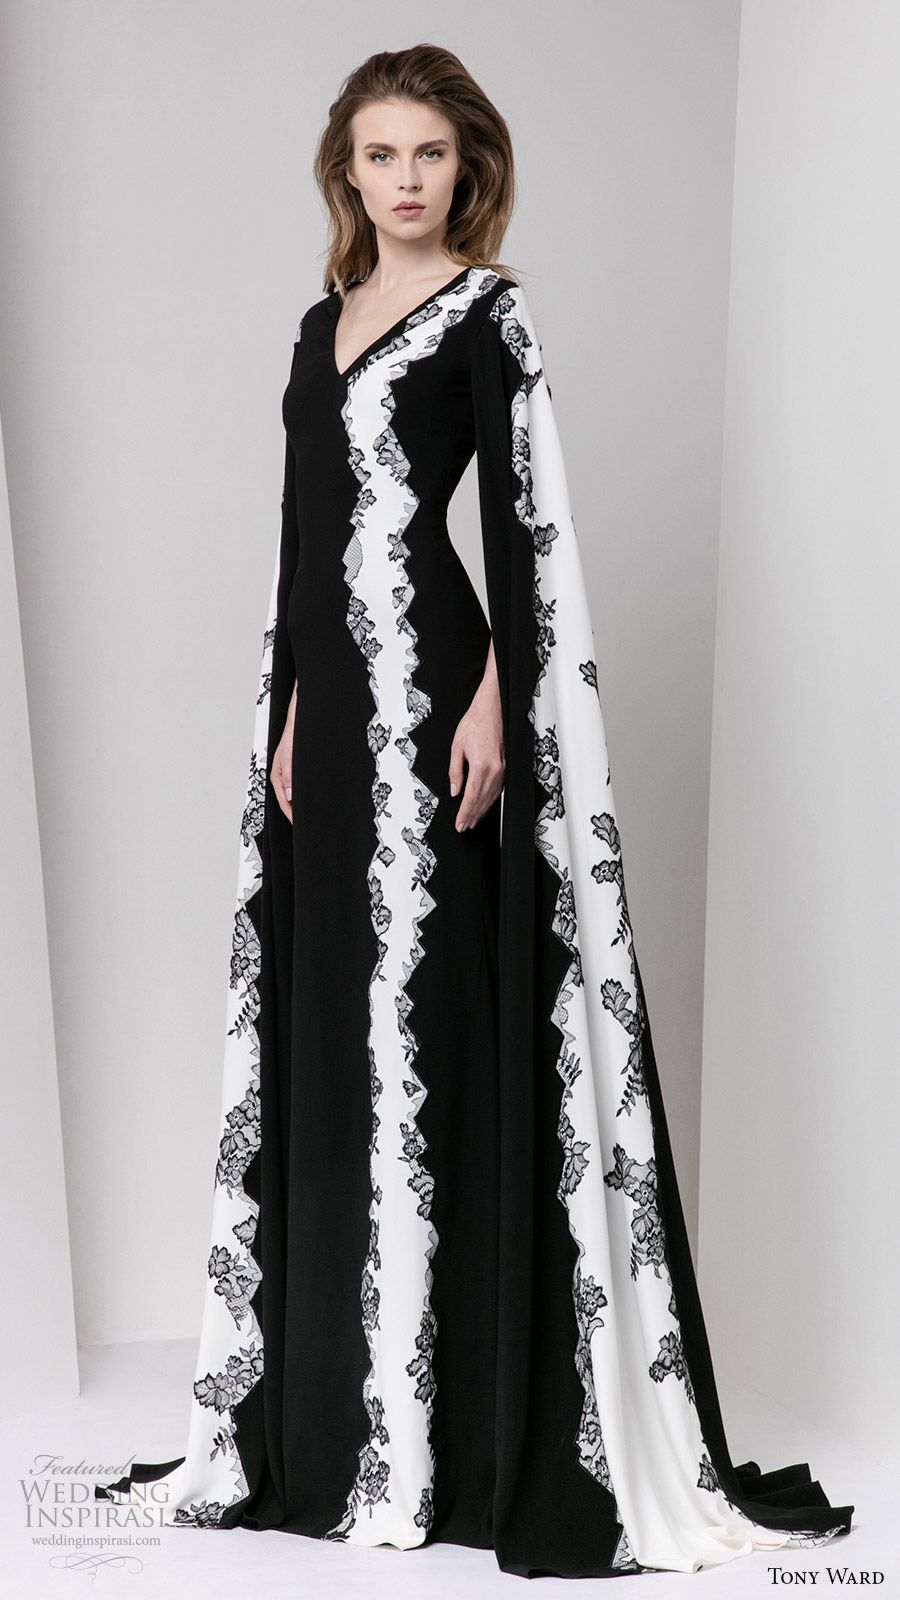 Tony Ward Fall 2016 Ready-to-Wear Dresses | Sleeve, Fall and Black